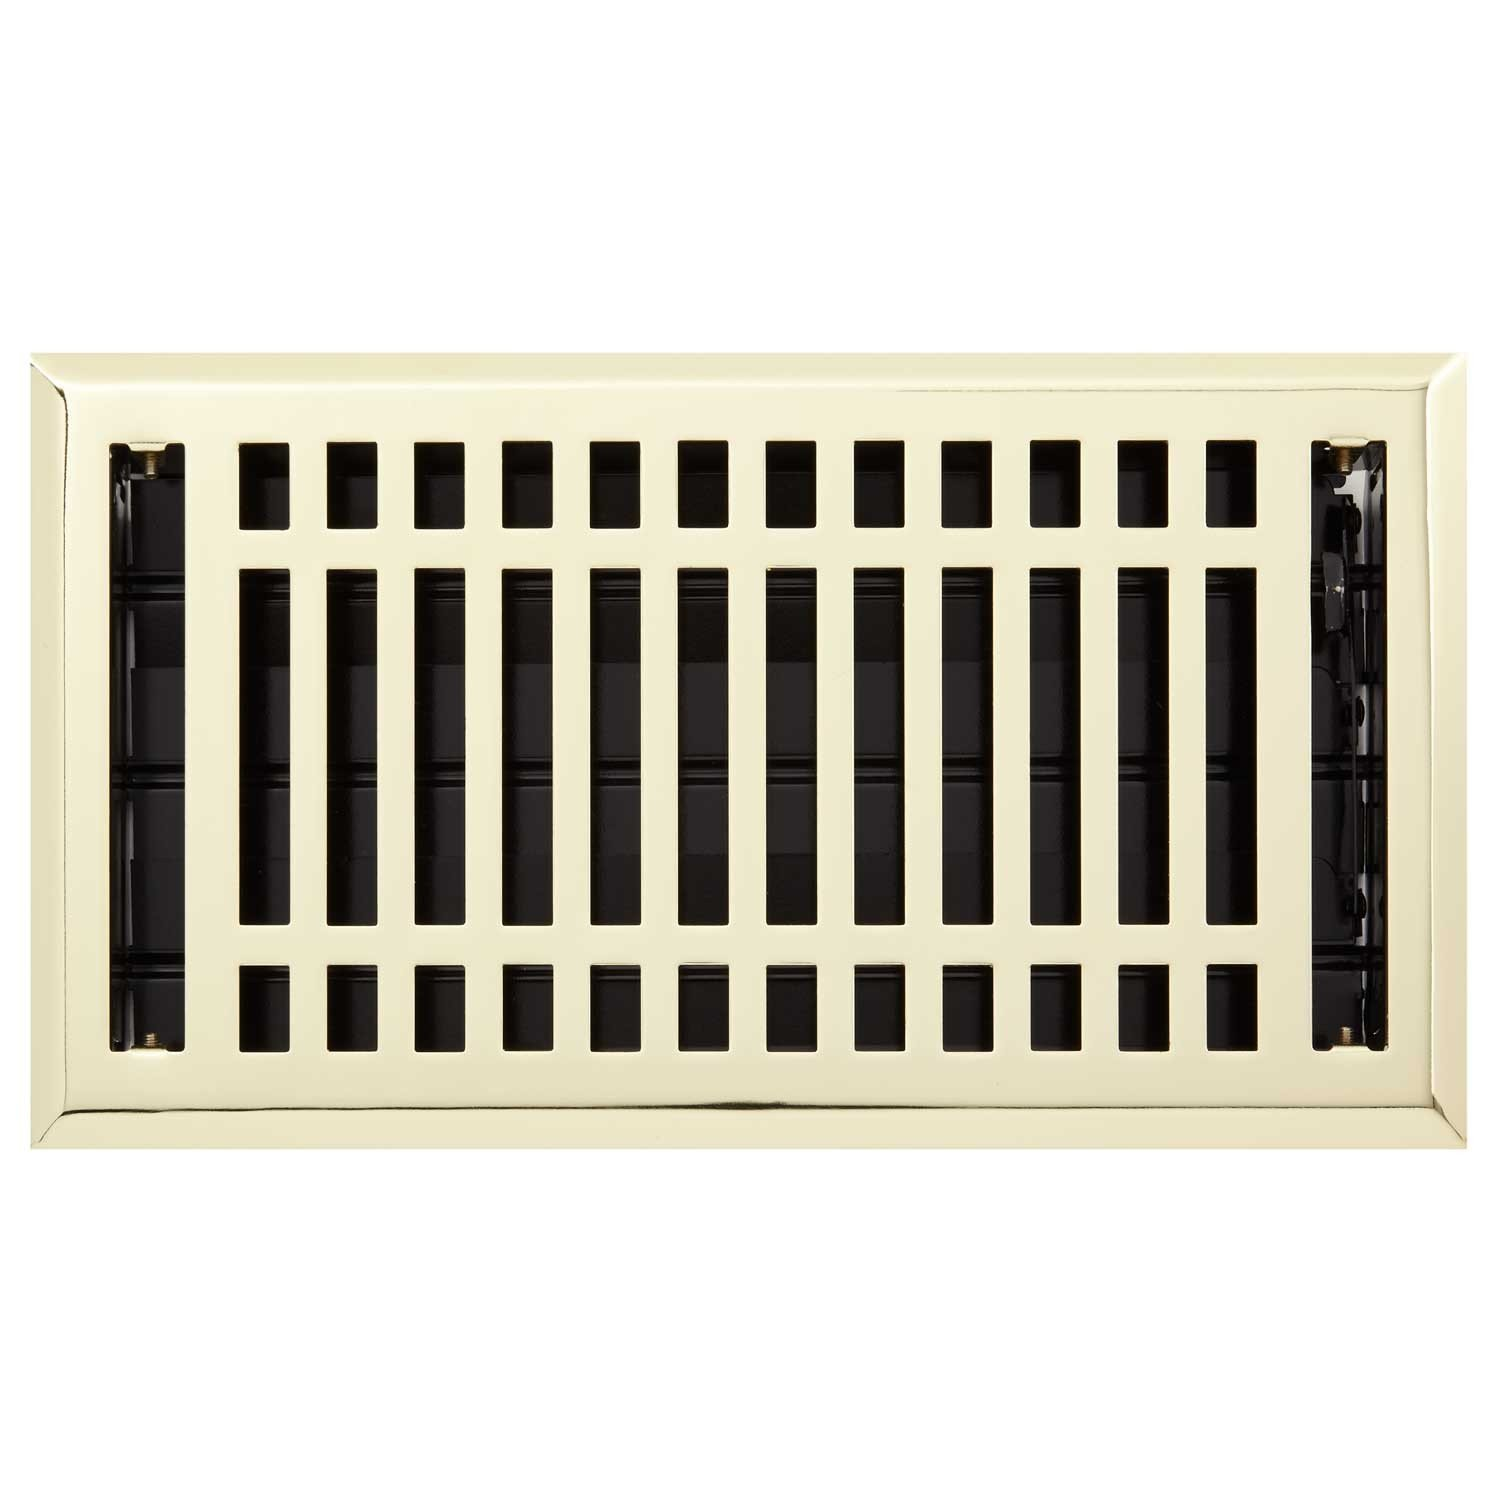 Naiture 4'' X 10'' Steel Louvered Floor Register with Damper or Lever Contemporary Style, Polished Brass Finish